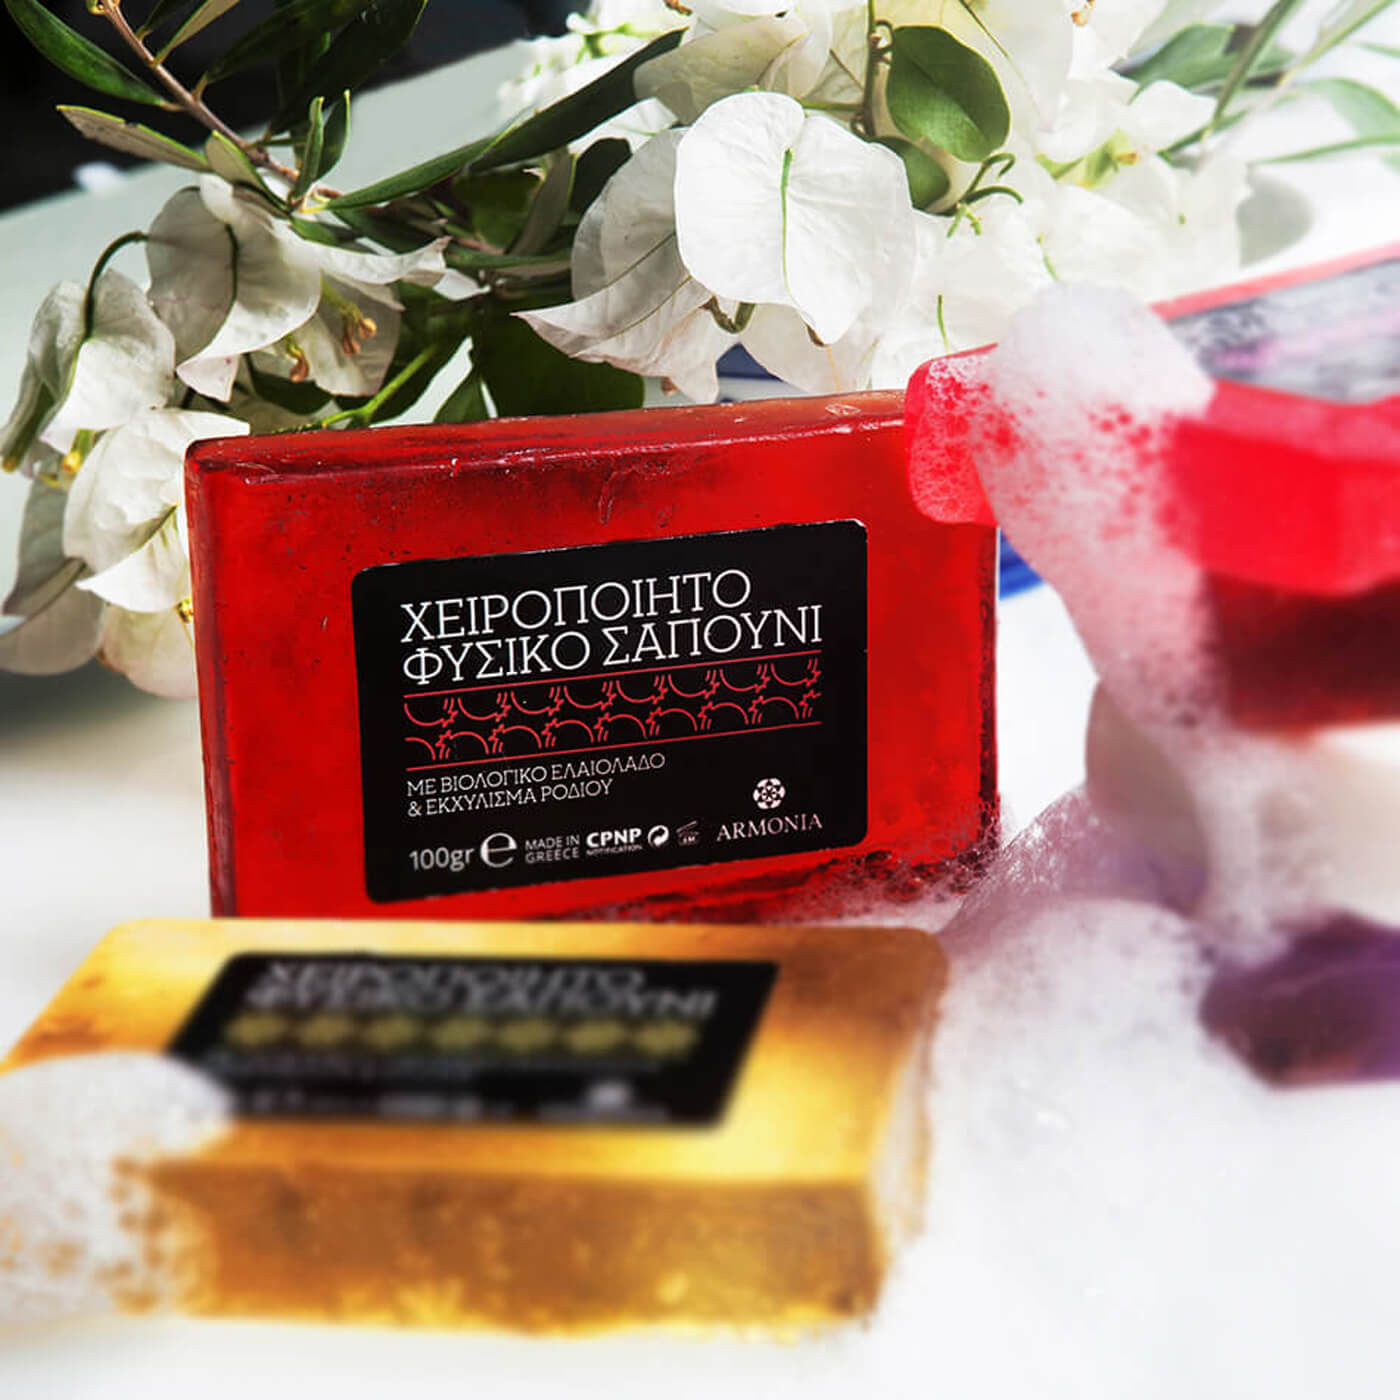 Handmade Soap with Organic Olive Oil pomegranate Natural 100% Skin Moisturizing Acne extract Antioxidants Dermatologically Vitamin greek free aging